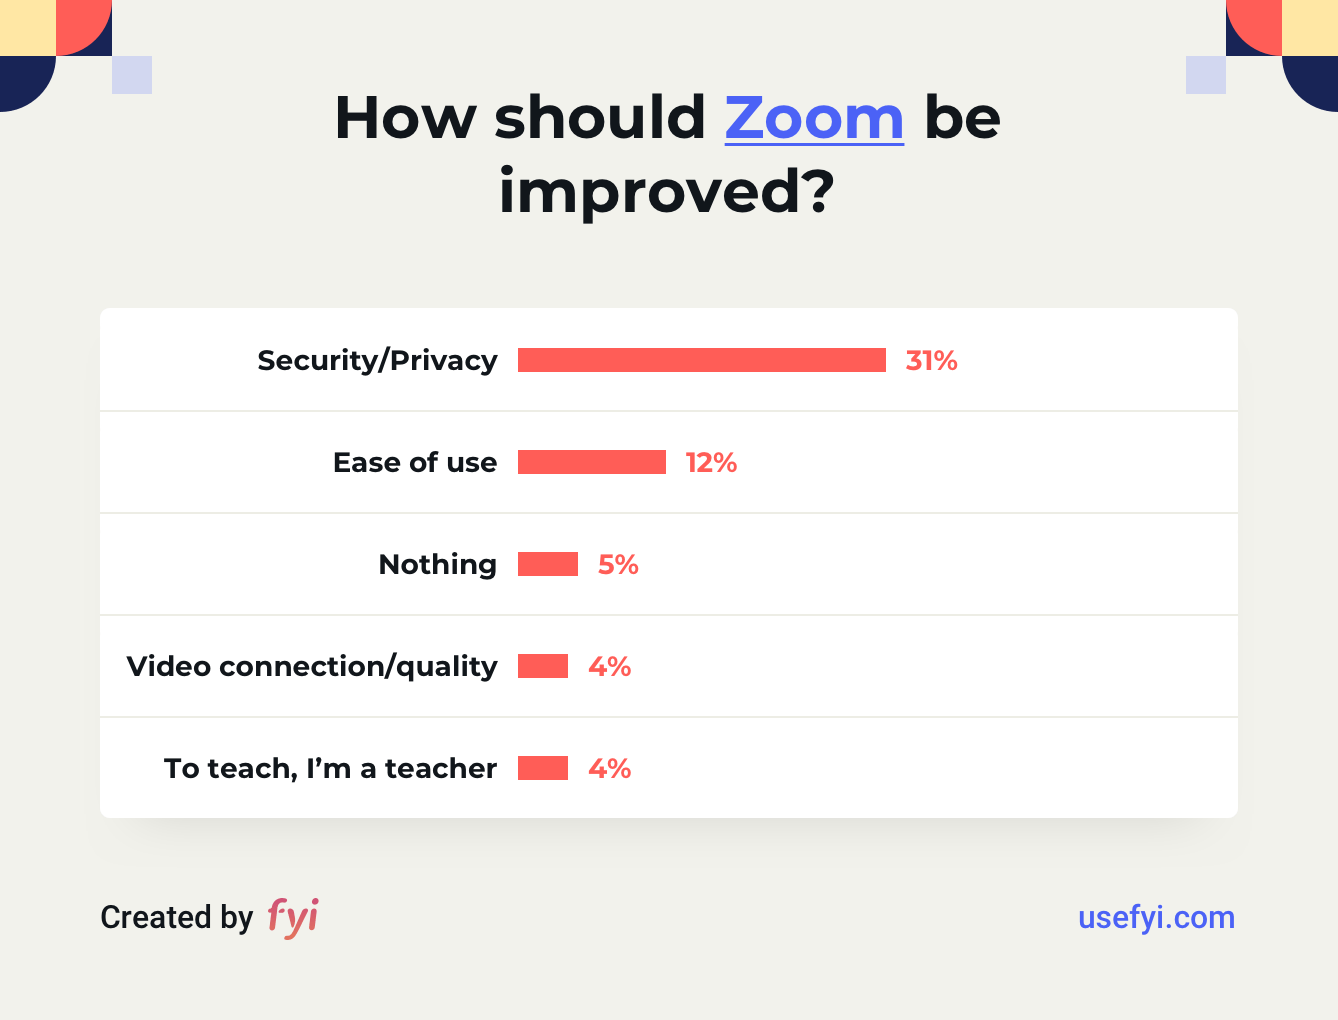 How should Zoom be improved